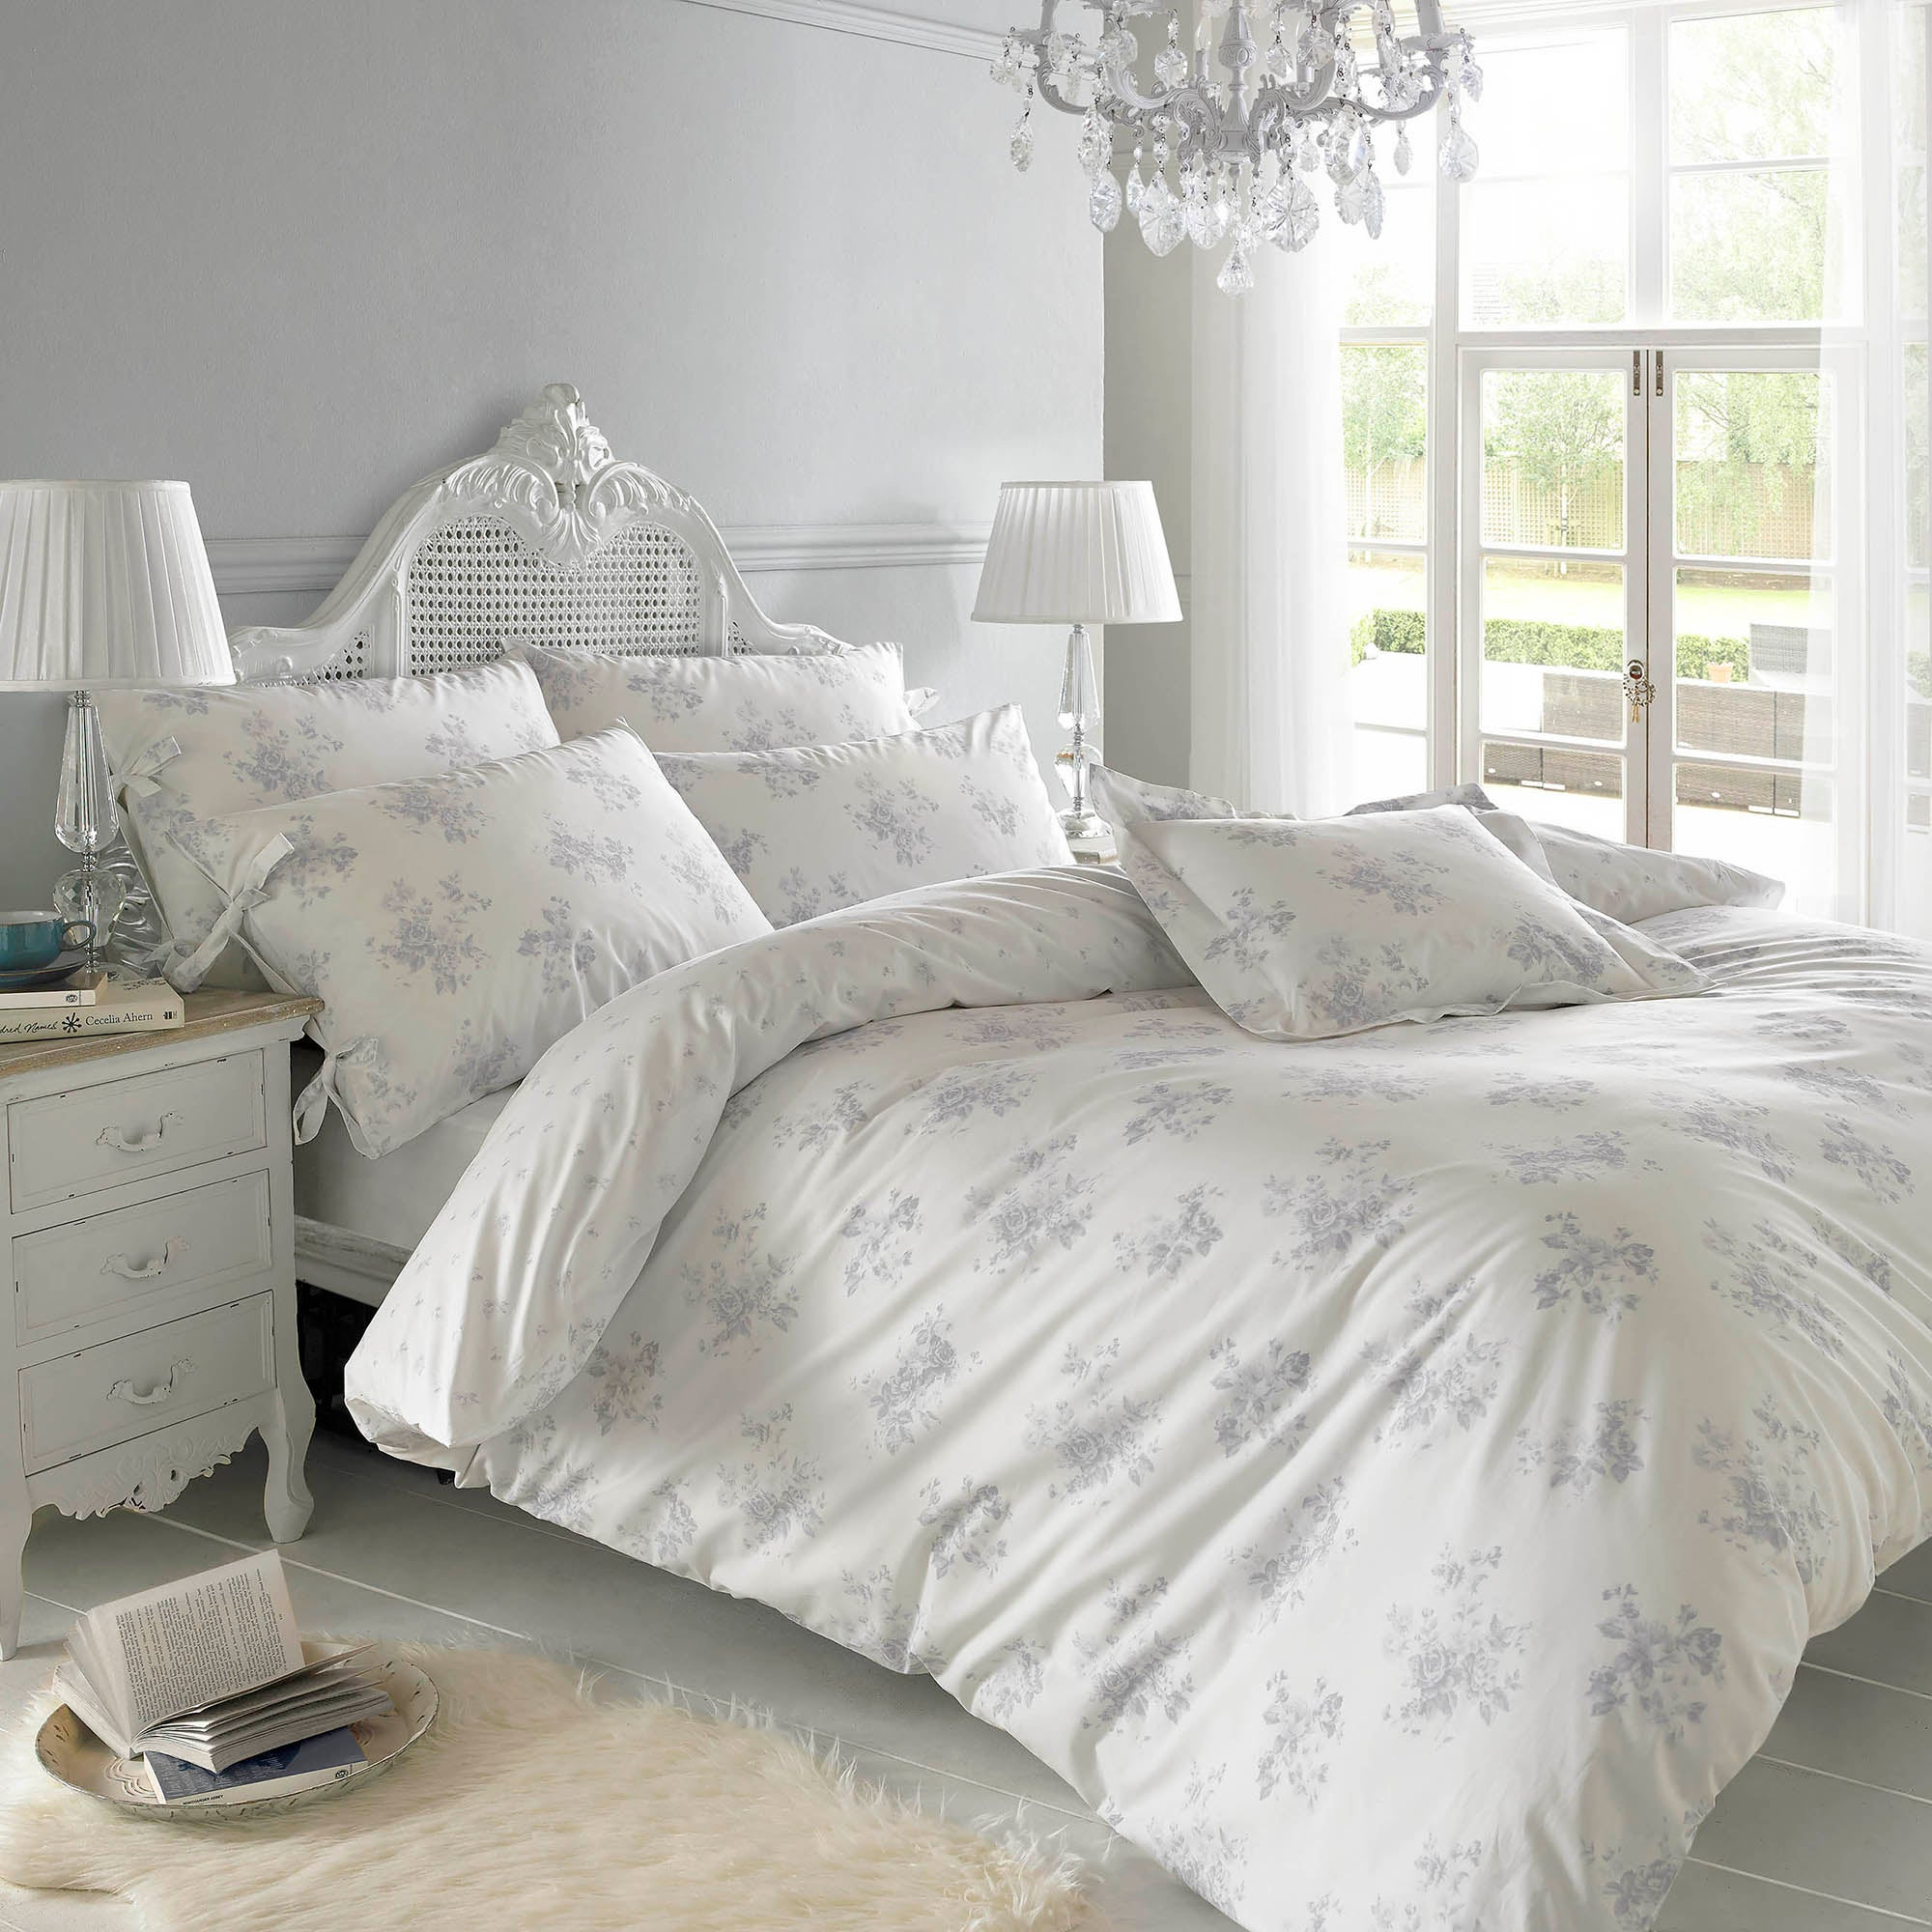 Holly Willoughby Maya Blue Bed Linen Collection